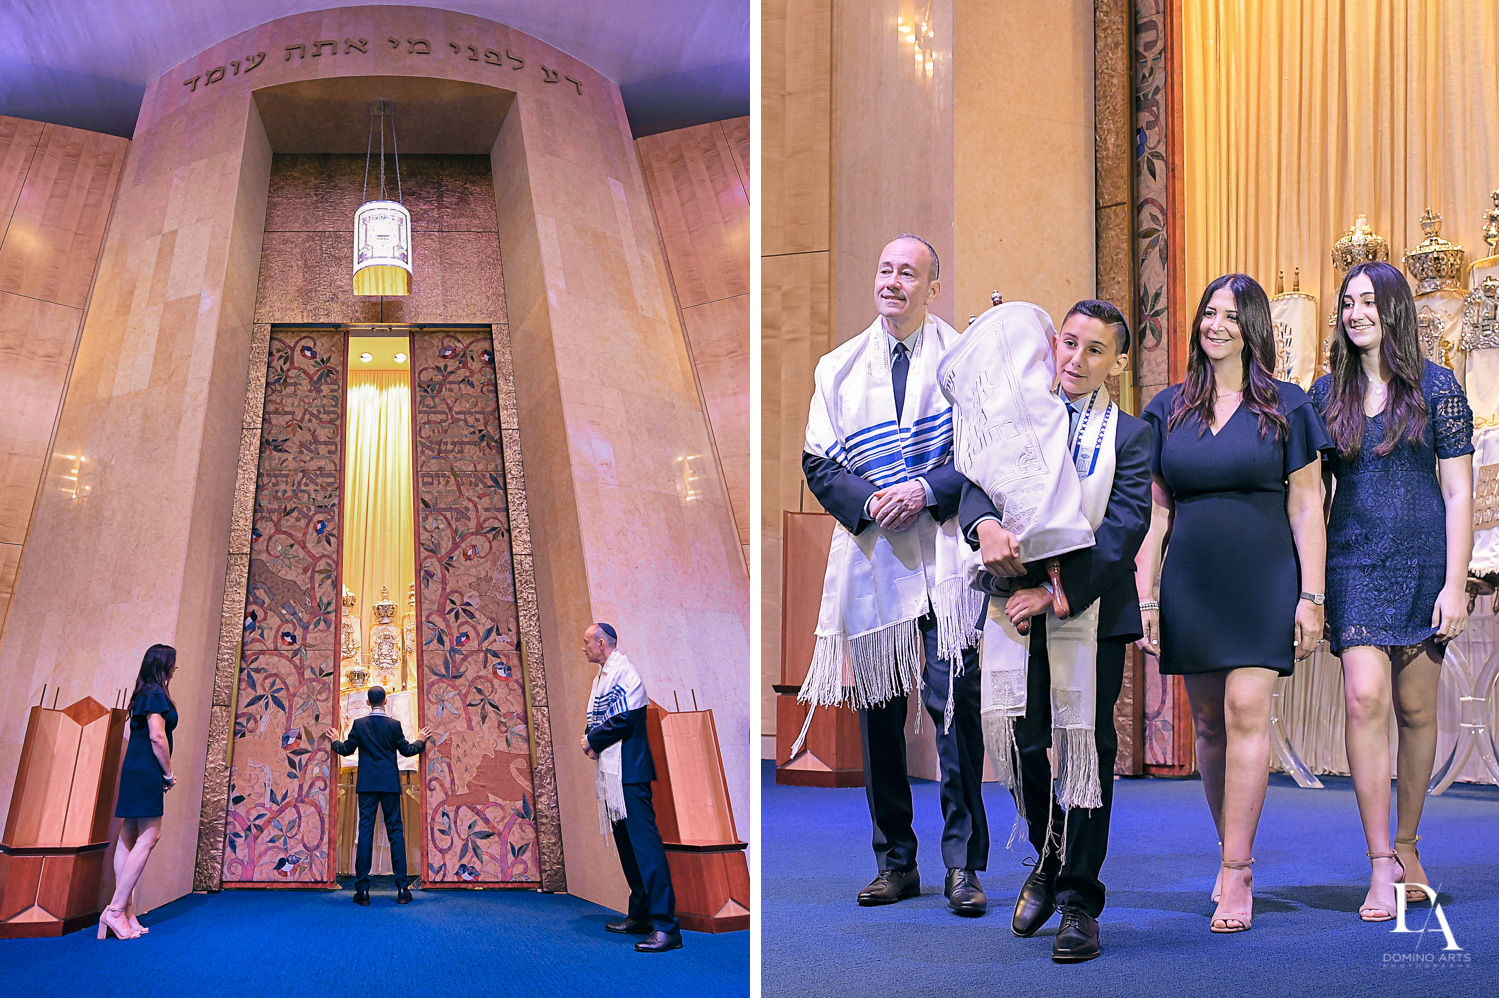 Ceremony at Sports Theme Bar Mitzvah at BNai Torah Boca